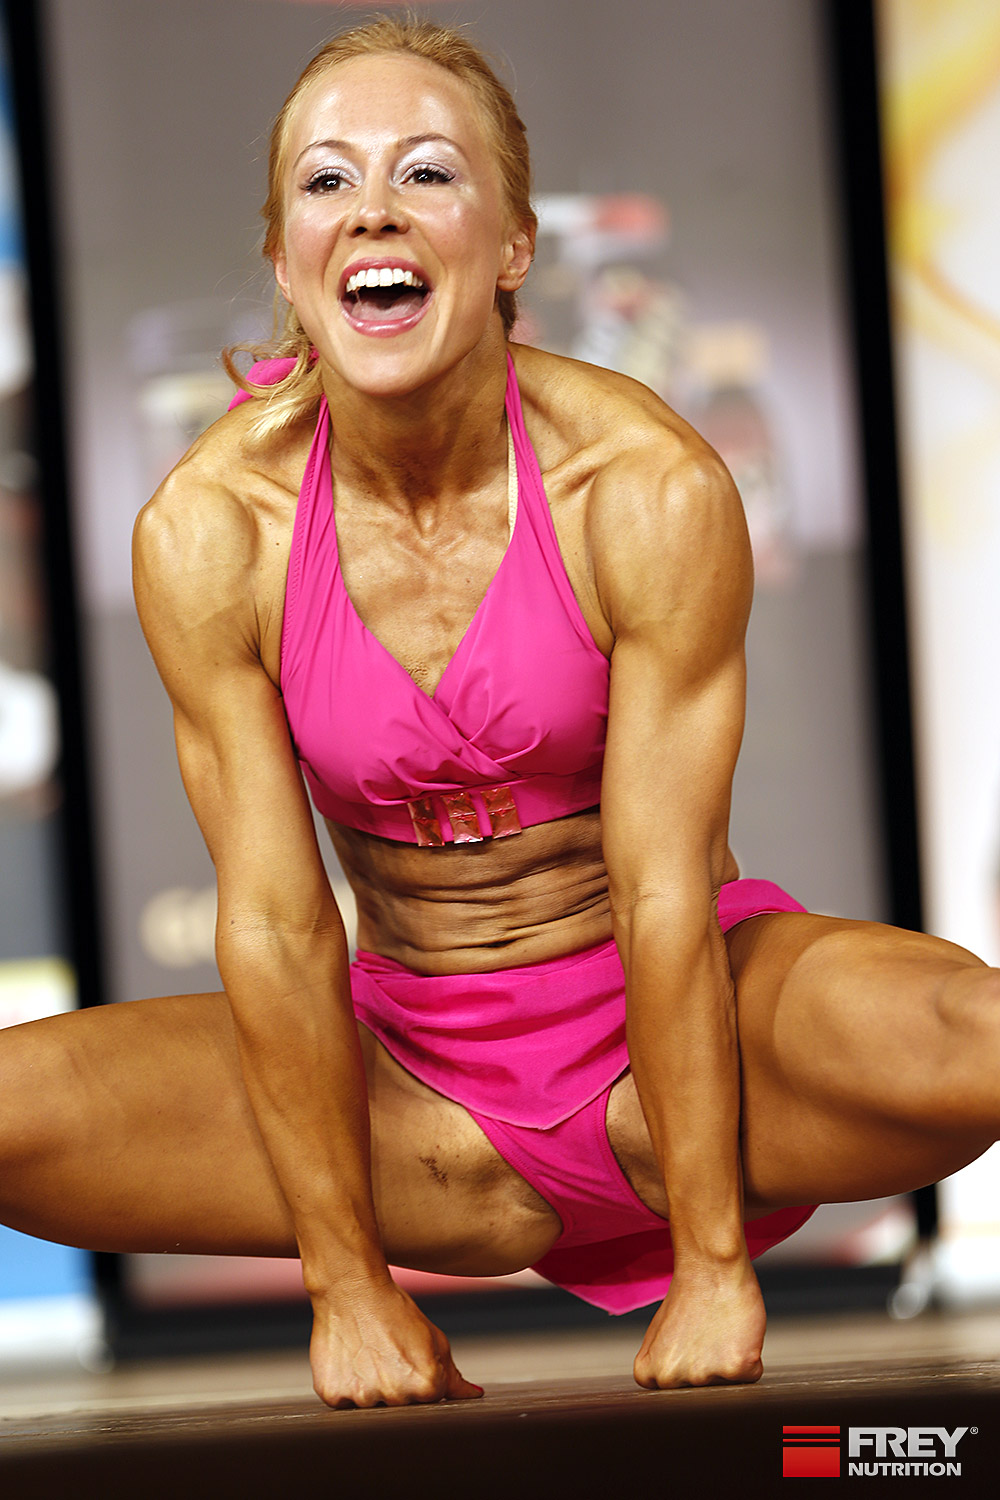 Ms. Fitness | Bodil Mohlund